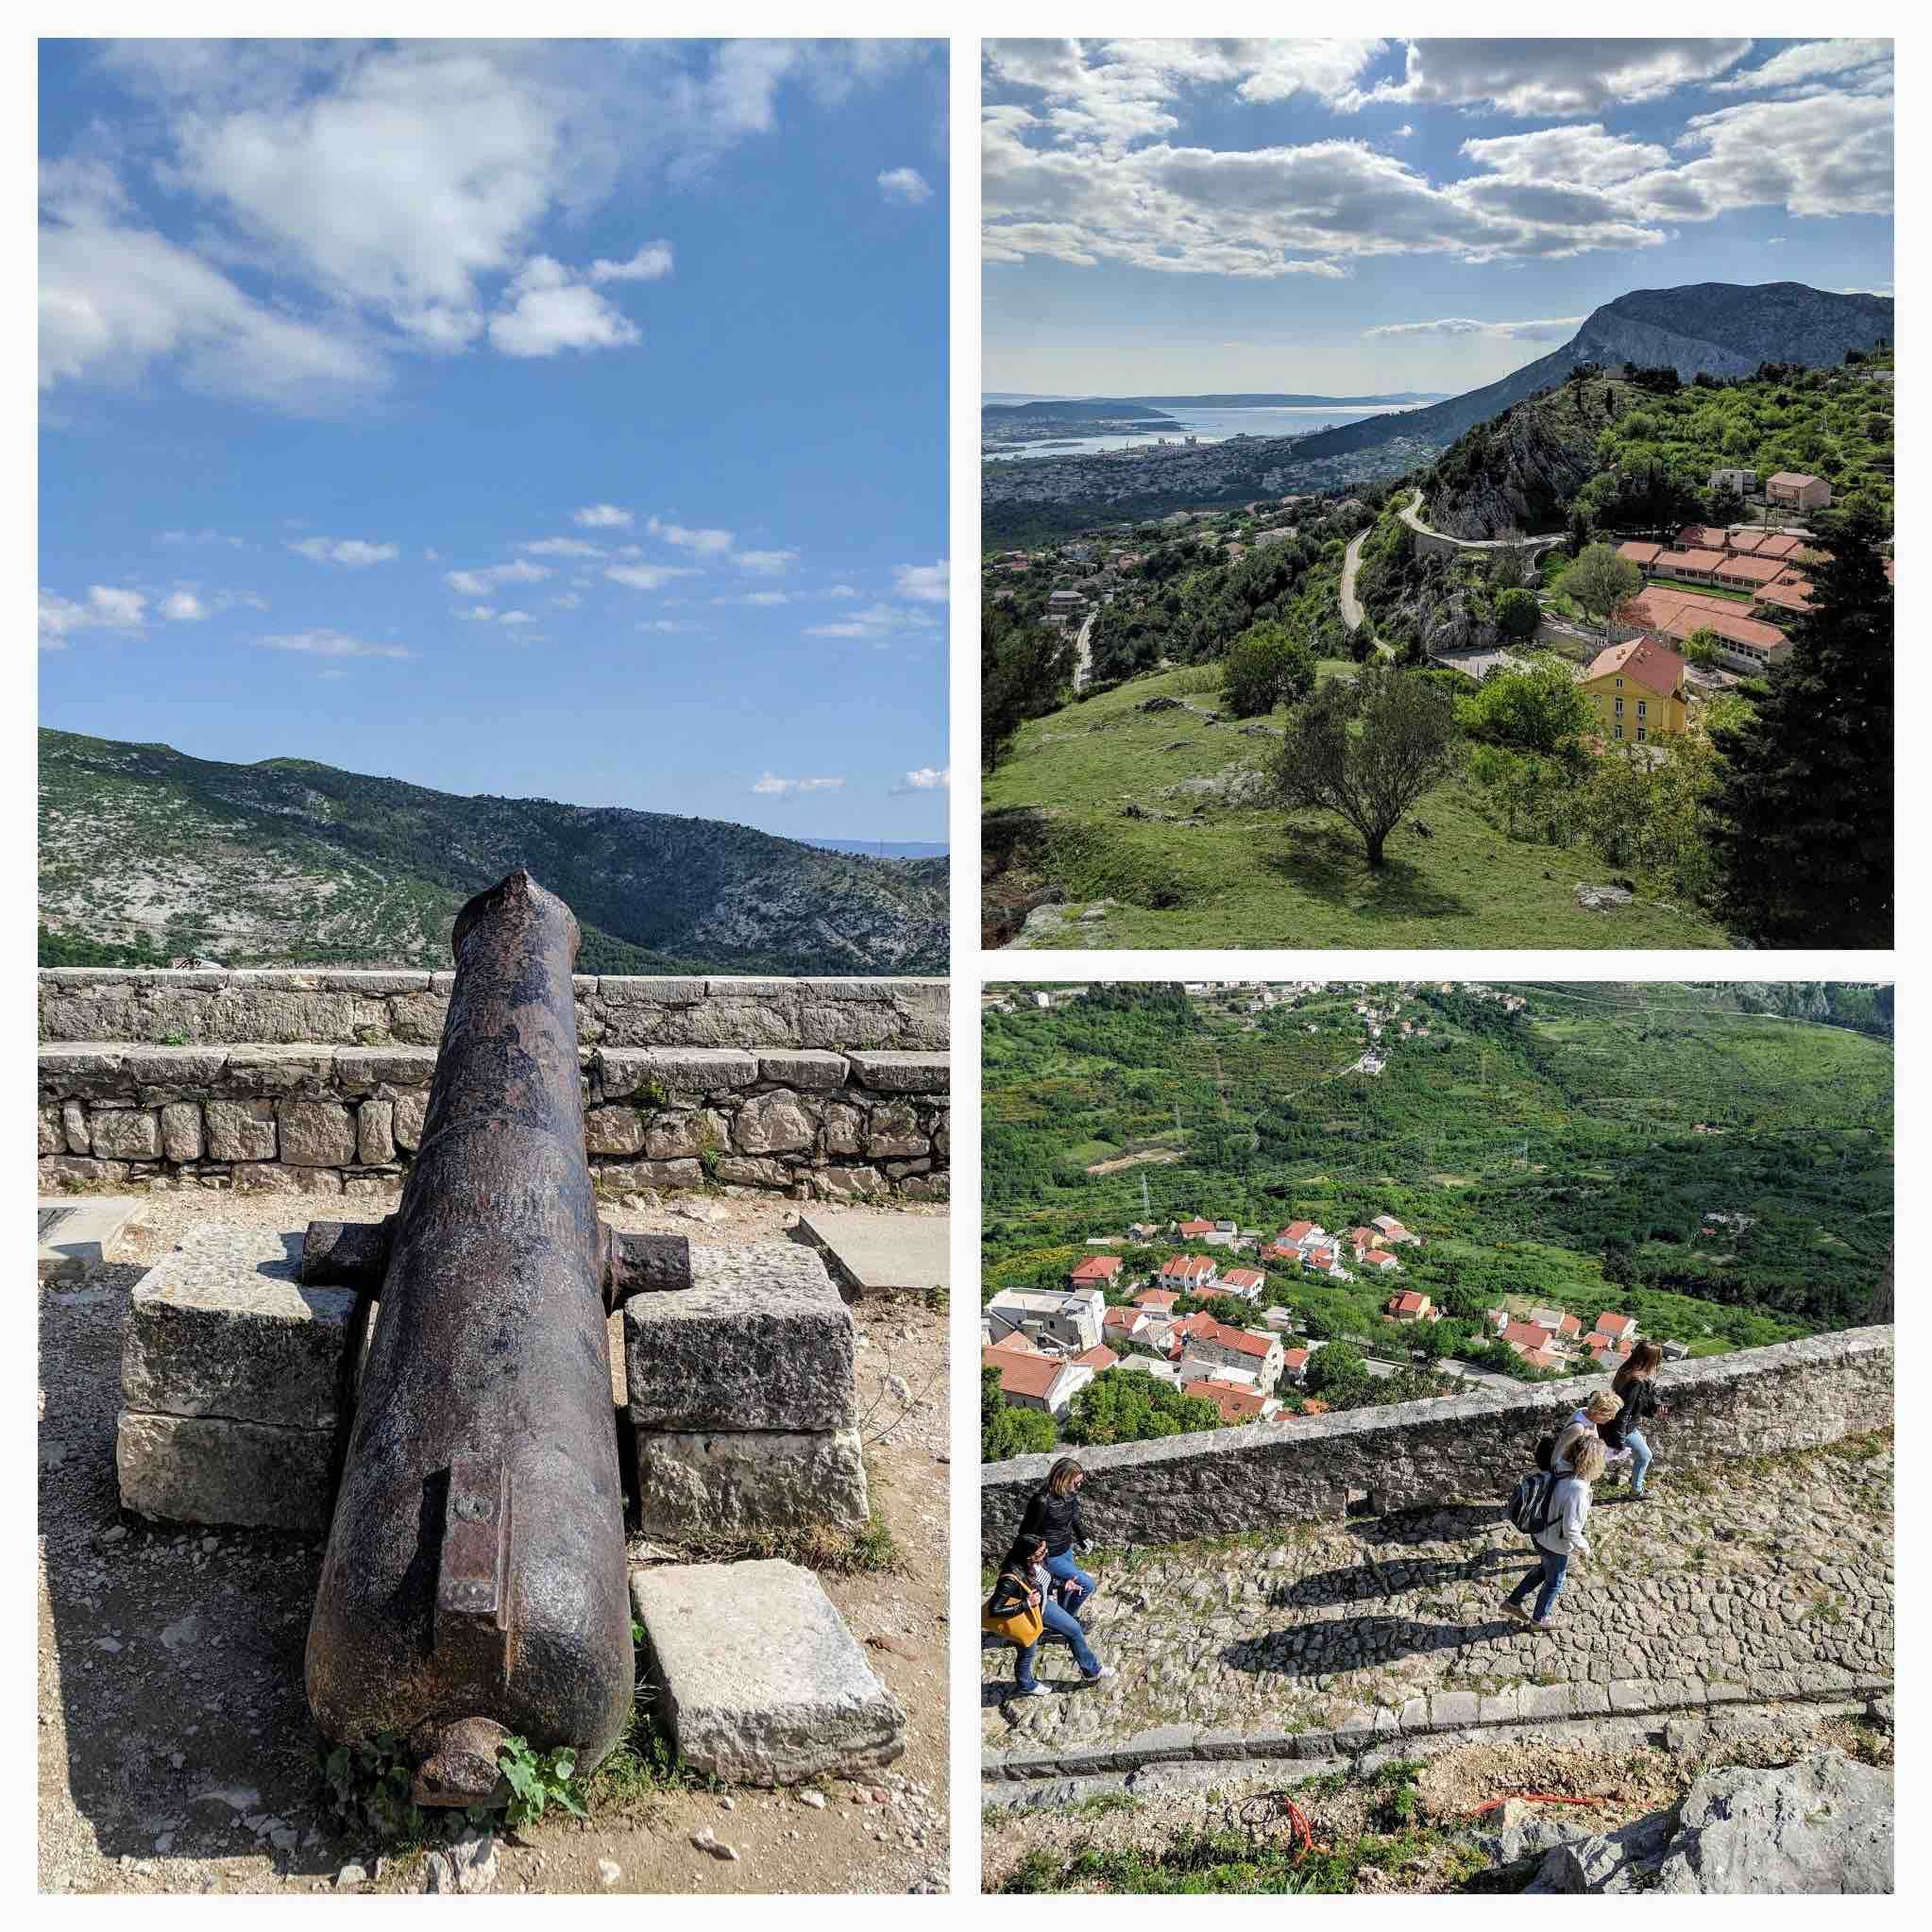 Views from Klis fort